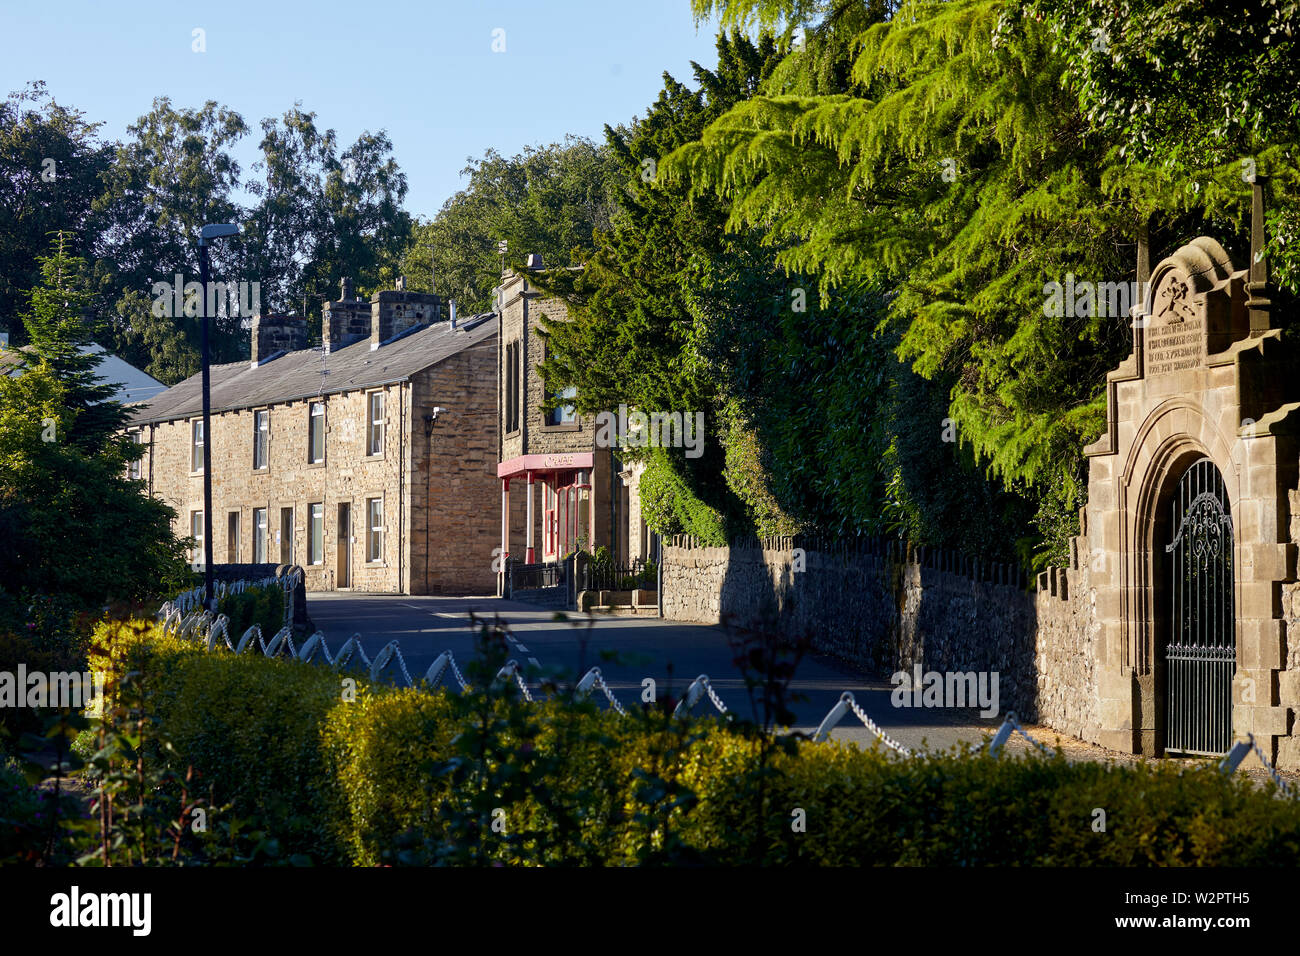 Waddington small picturesque village near Clitheroe in the Ribble Valley, Lancashire, grade II listed West wall, Waddington Hall with Iron gate - Stock Image